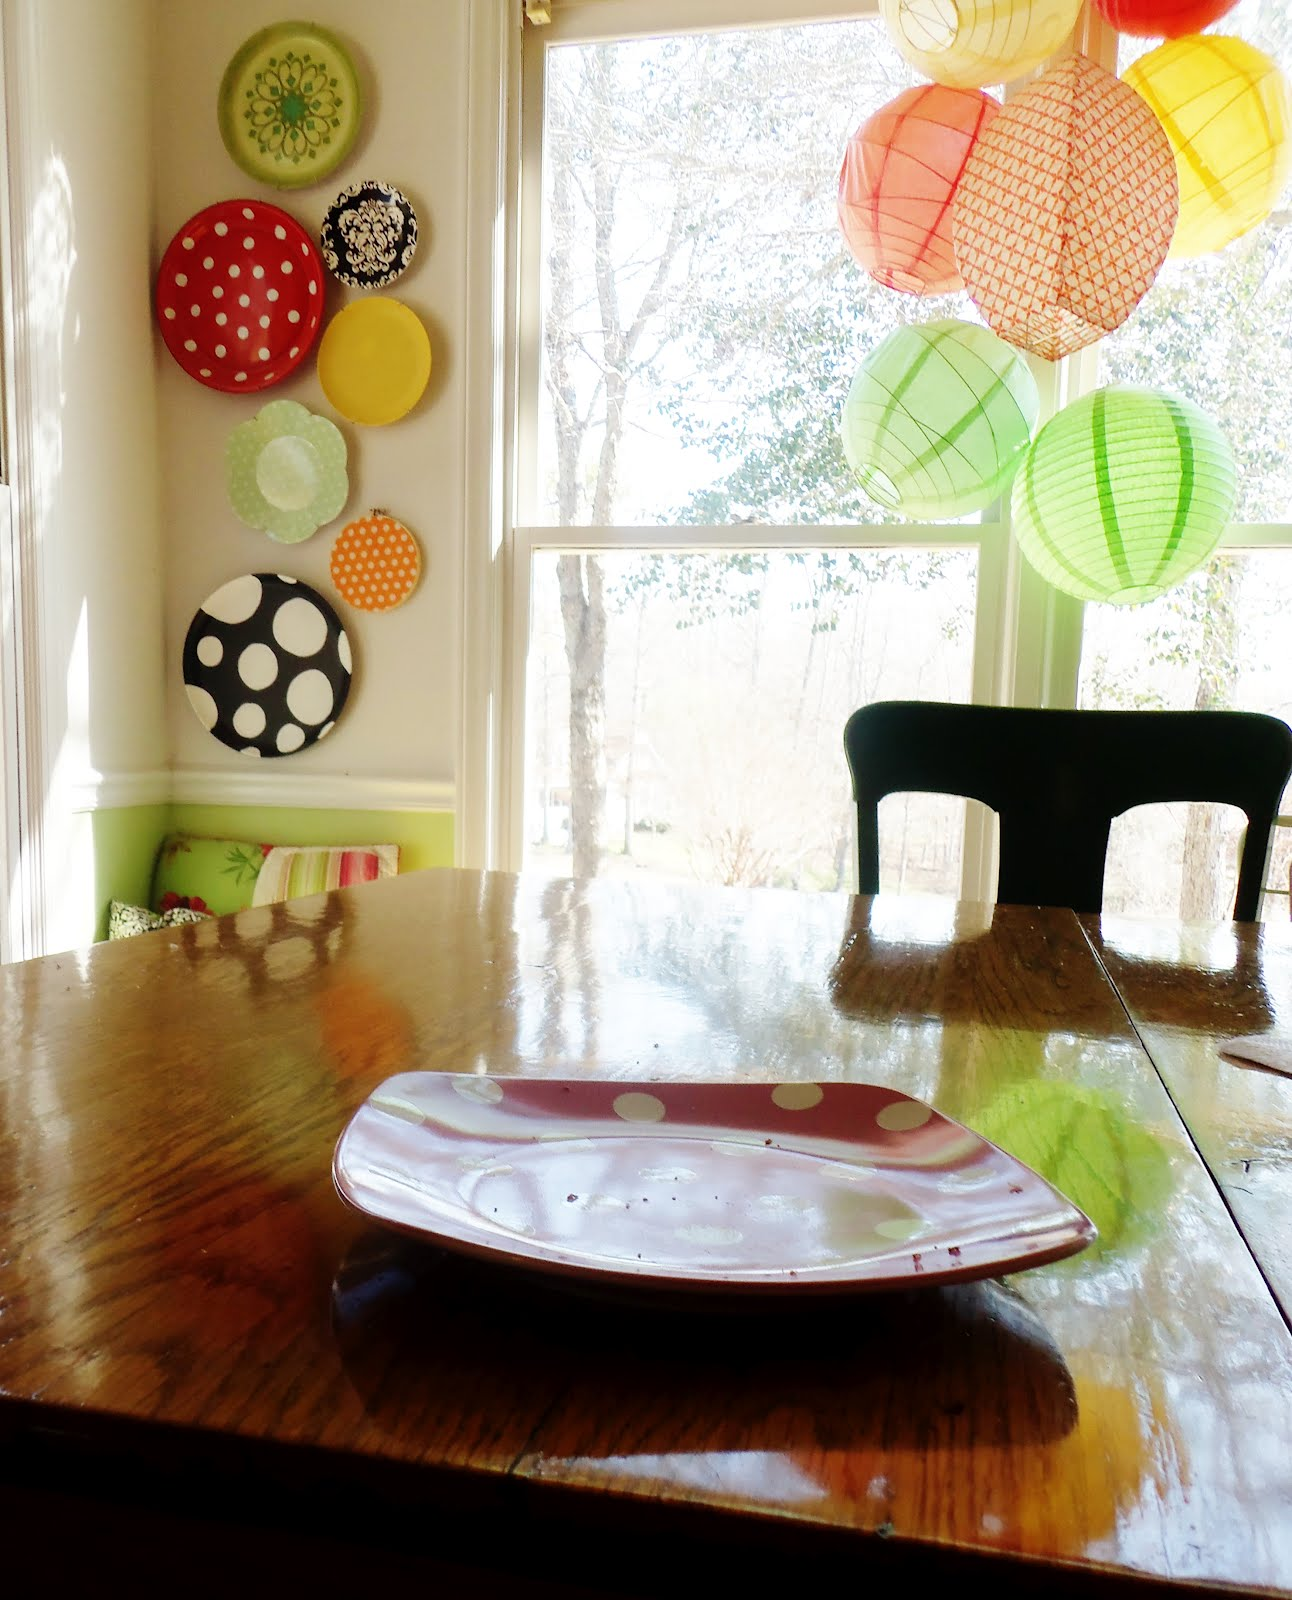 sara\'s art* house: doughnuts + more changes in the kitchen